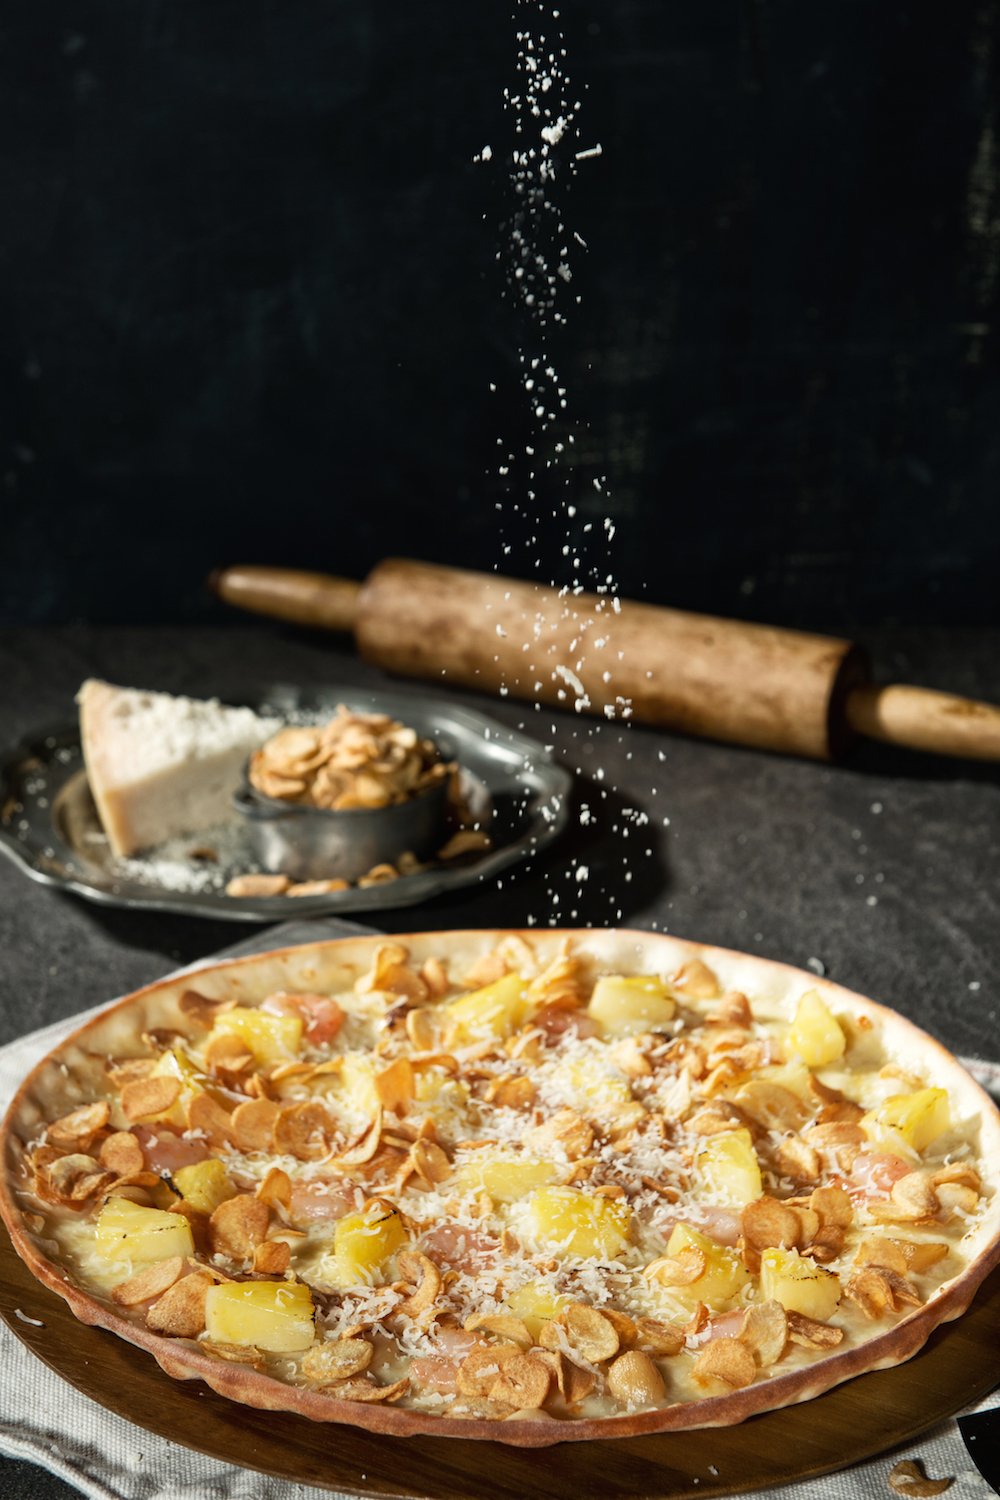 The Garlic Snowing Pizza ($108)